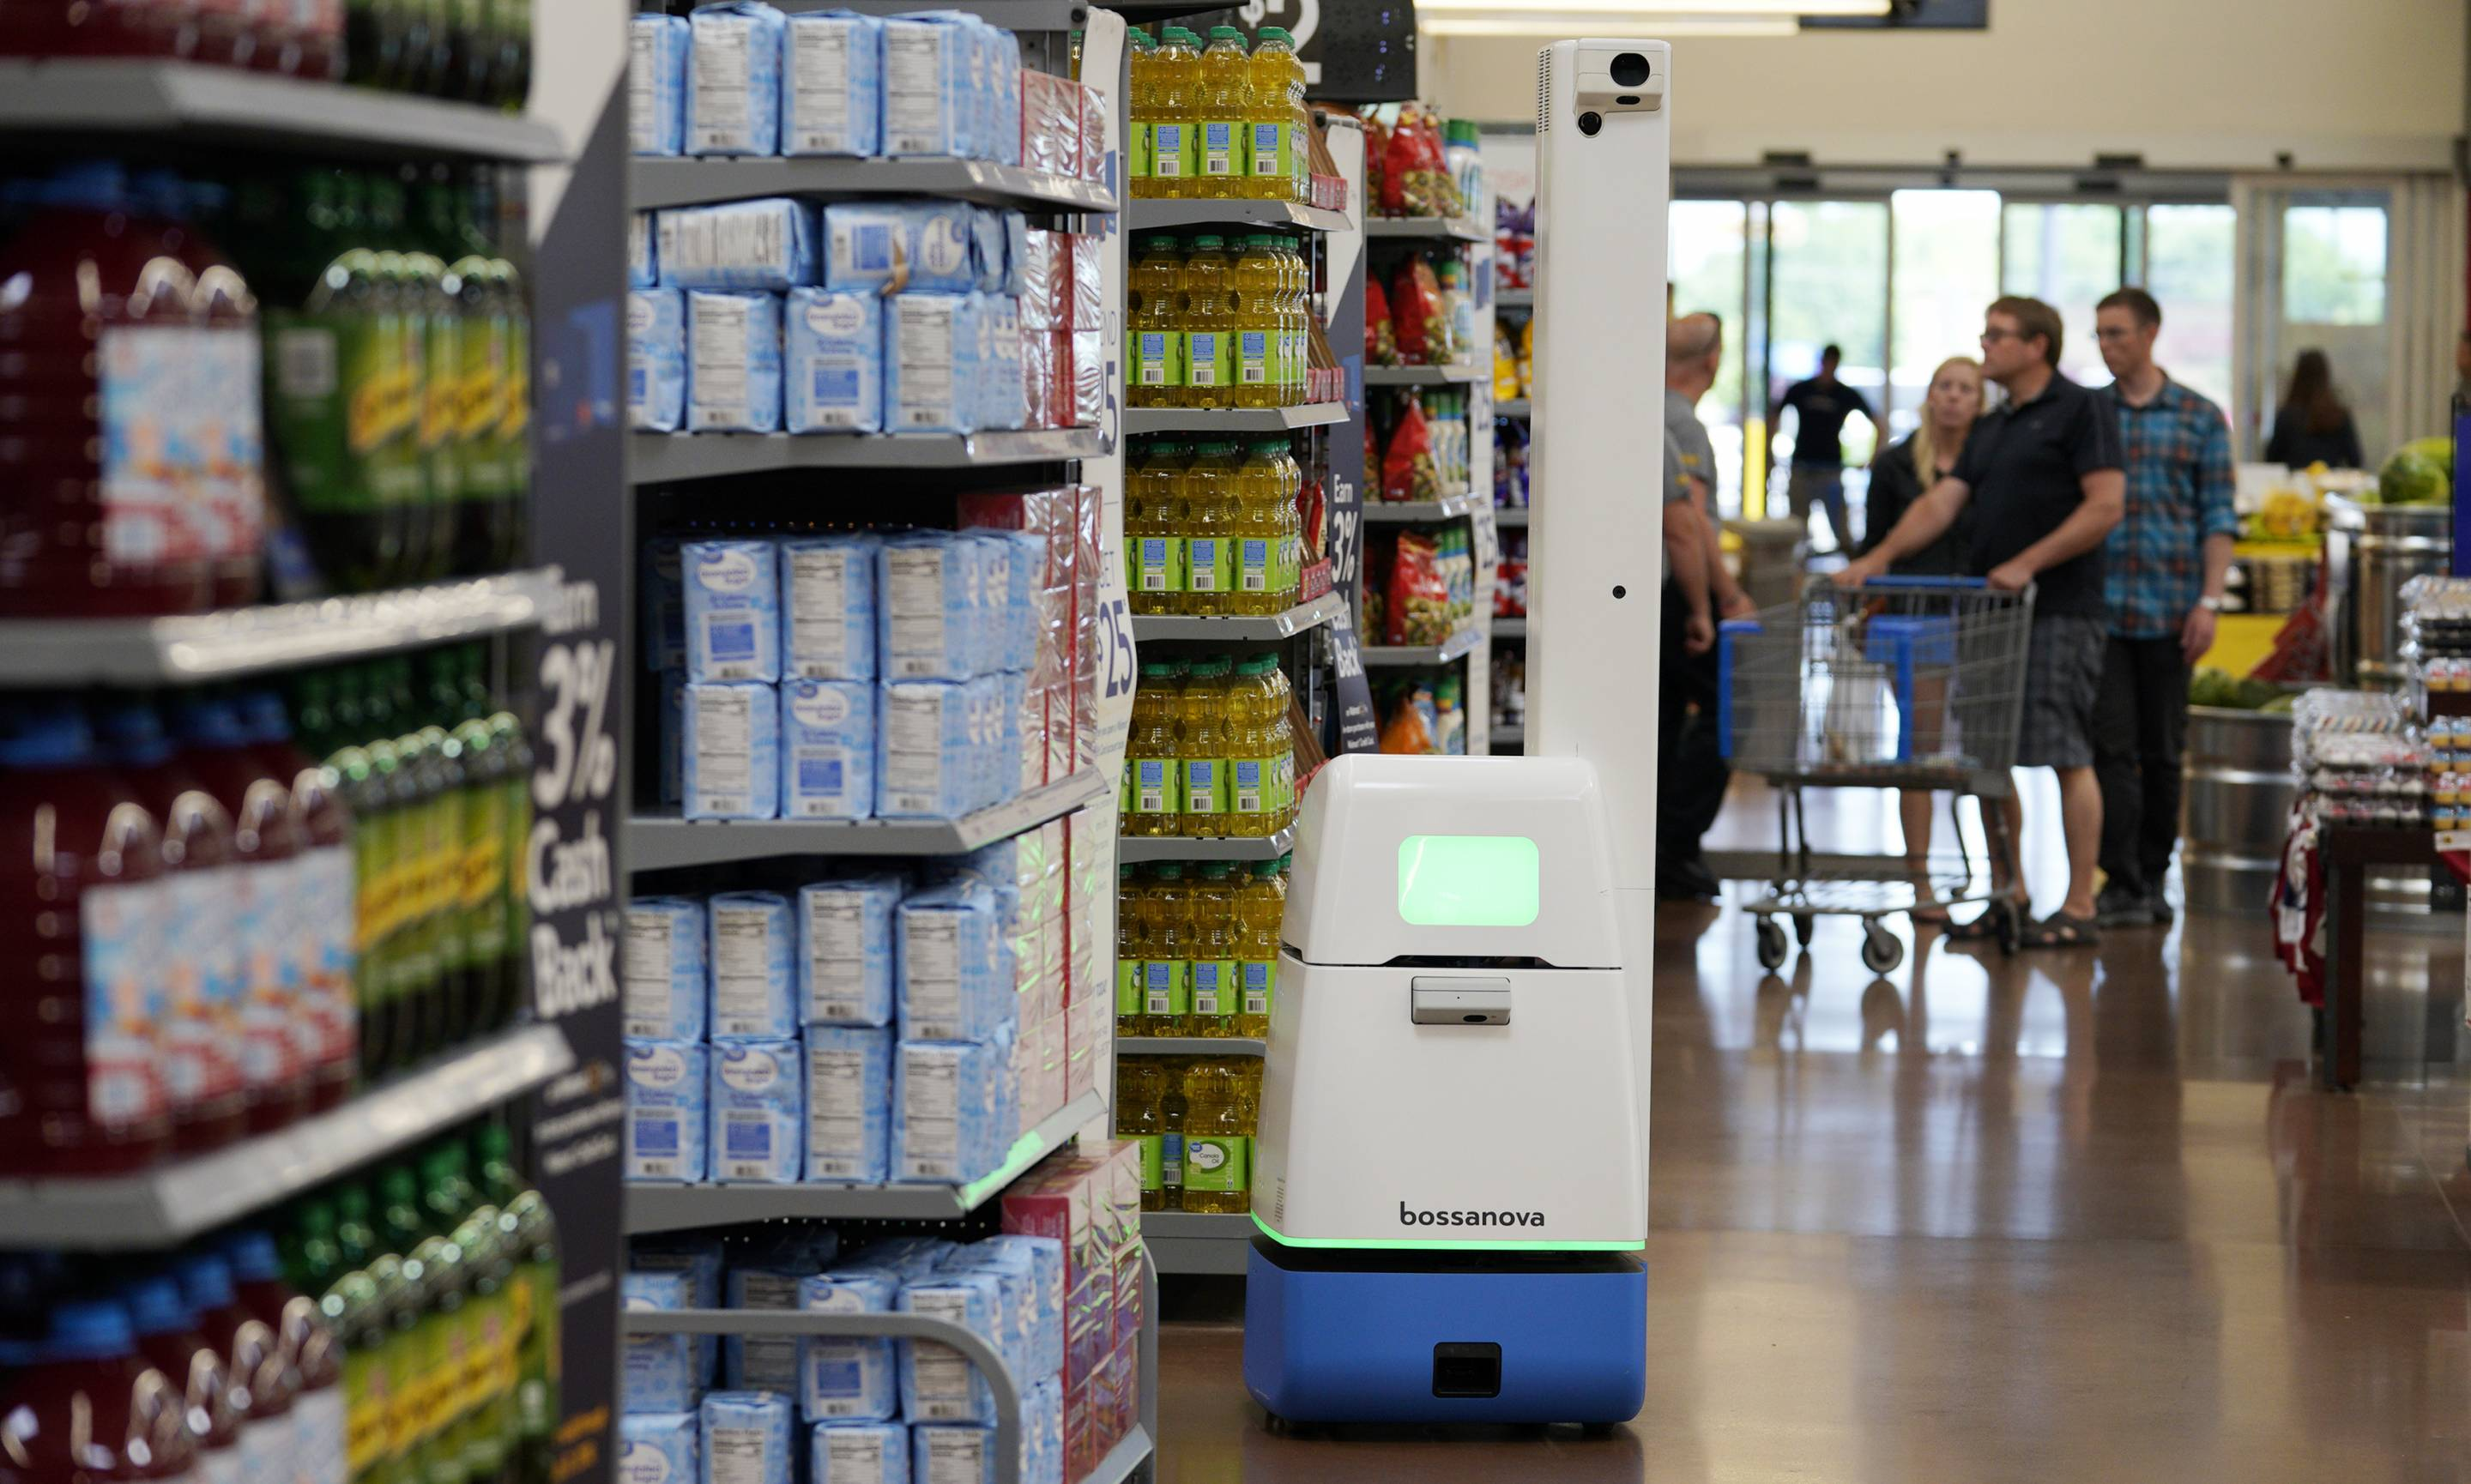 A Bossa Nova Robotics scanning device moves through an aisle at a Walmart Supercenter during the company's annual shareholders meeting on May 31, 2018 in Rogers, Ark.